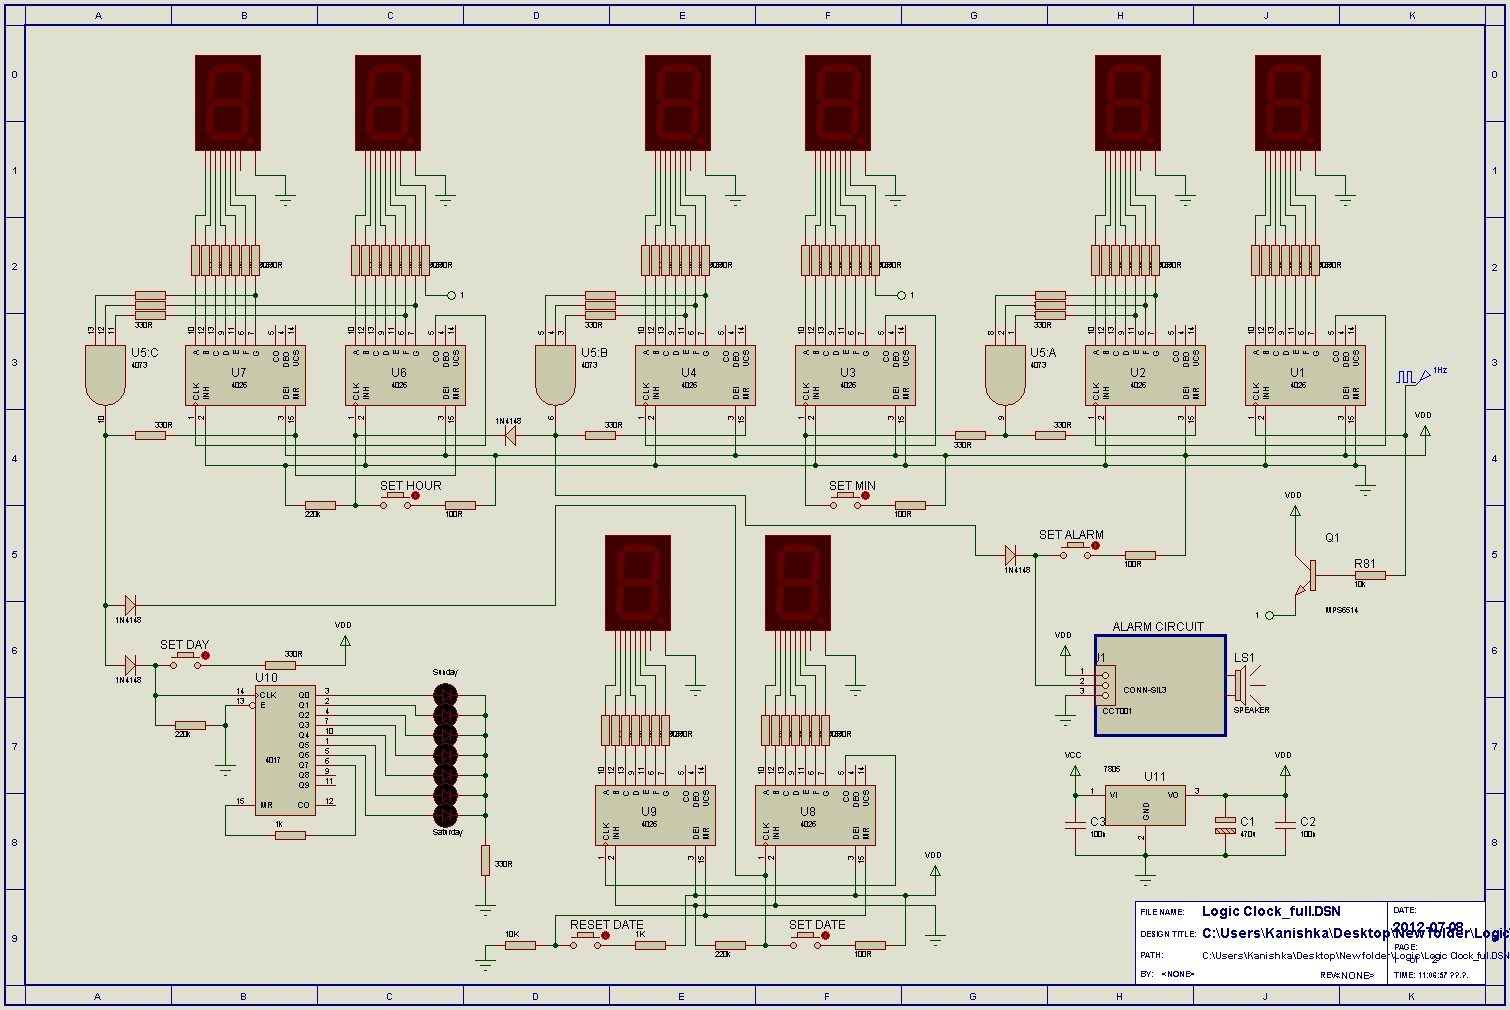 Digital Clock Using Ic 555 Circuit Diagram Wiring For Dpdt Relay Switch Double Pole Throw Engineersgarage 24hr And Alarm Logic Ics Cd4017 Cd4026 Rh Scopionz Blogspot Com